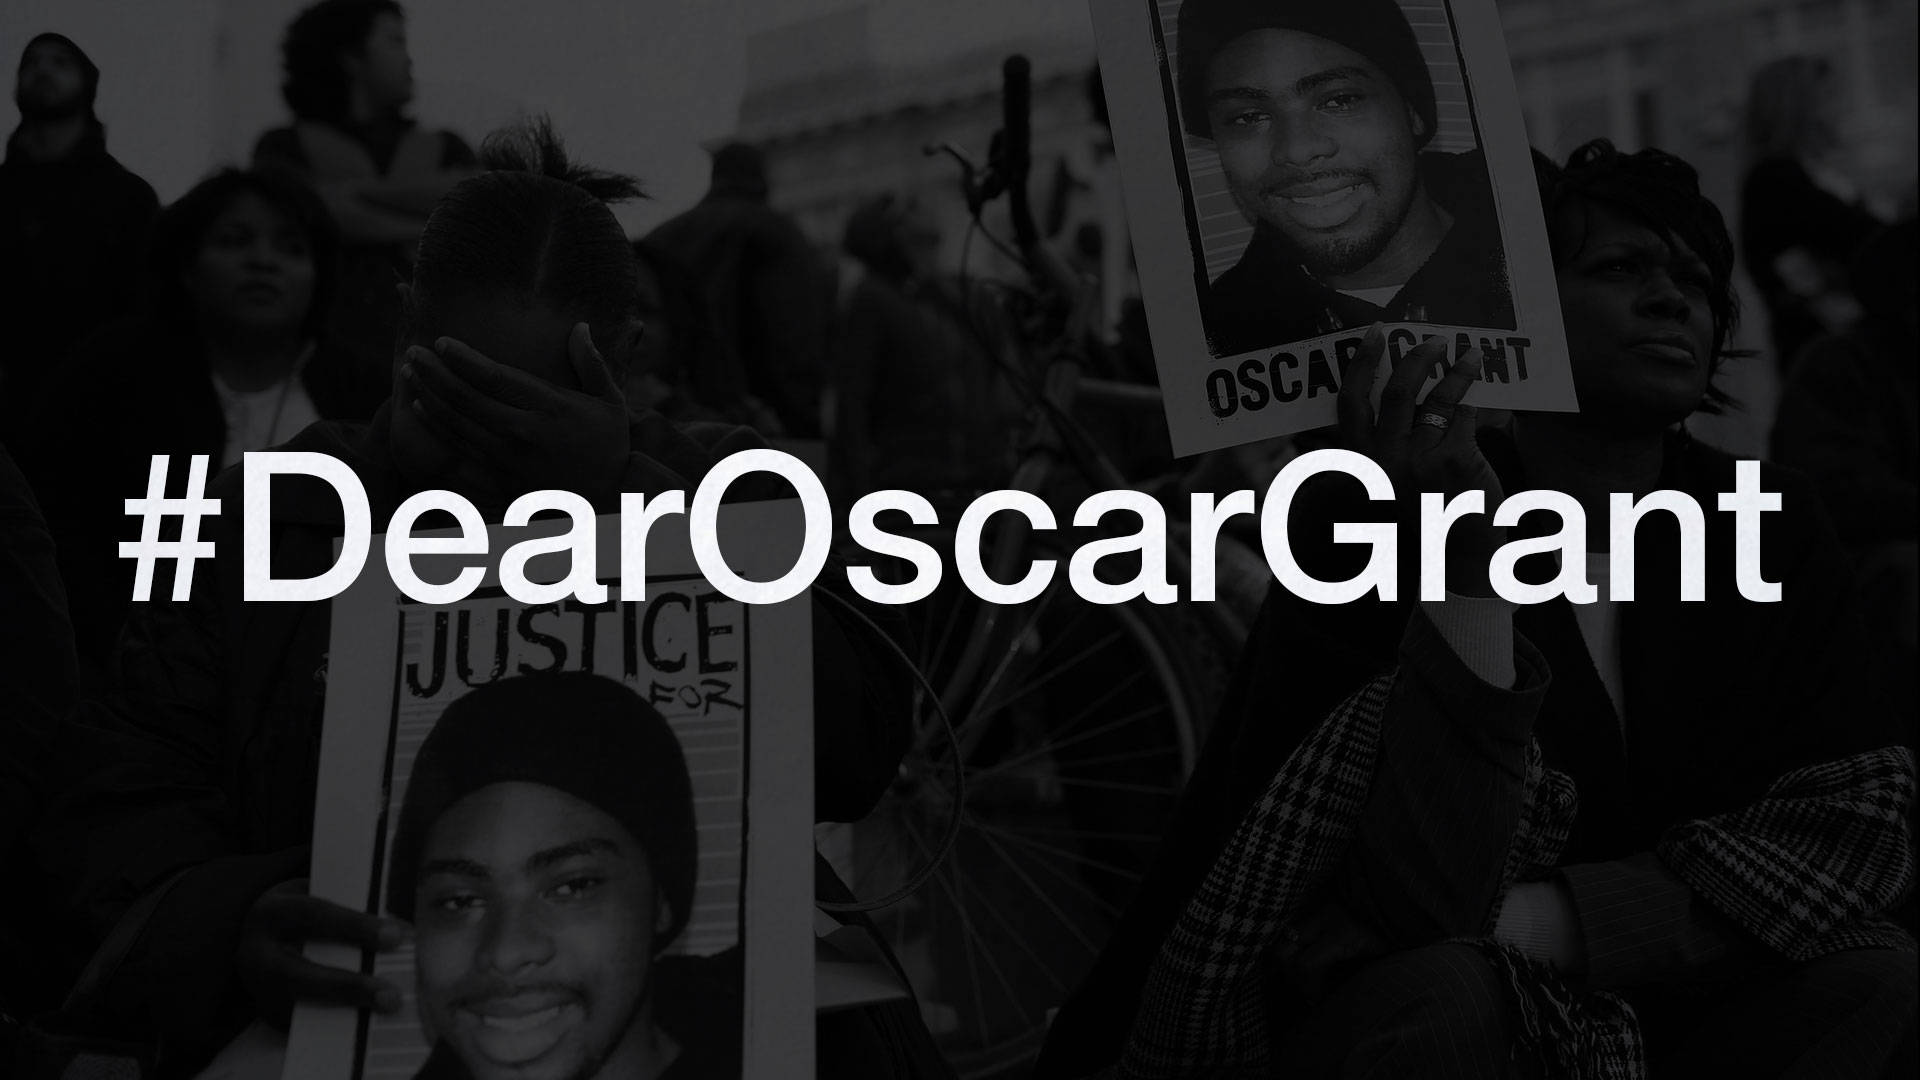 If you could tell Oscar Grant anything 10 years after his death, what would you say? Justin Sullivan/Getty Images